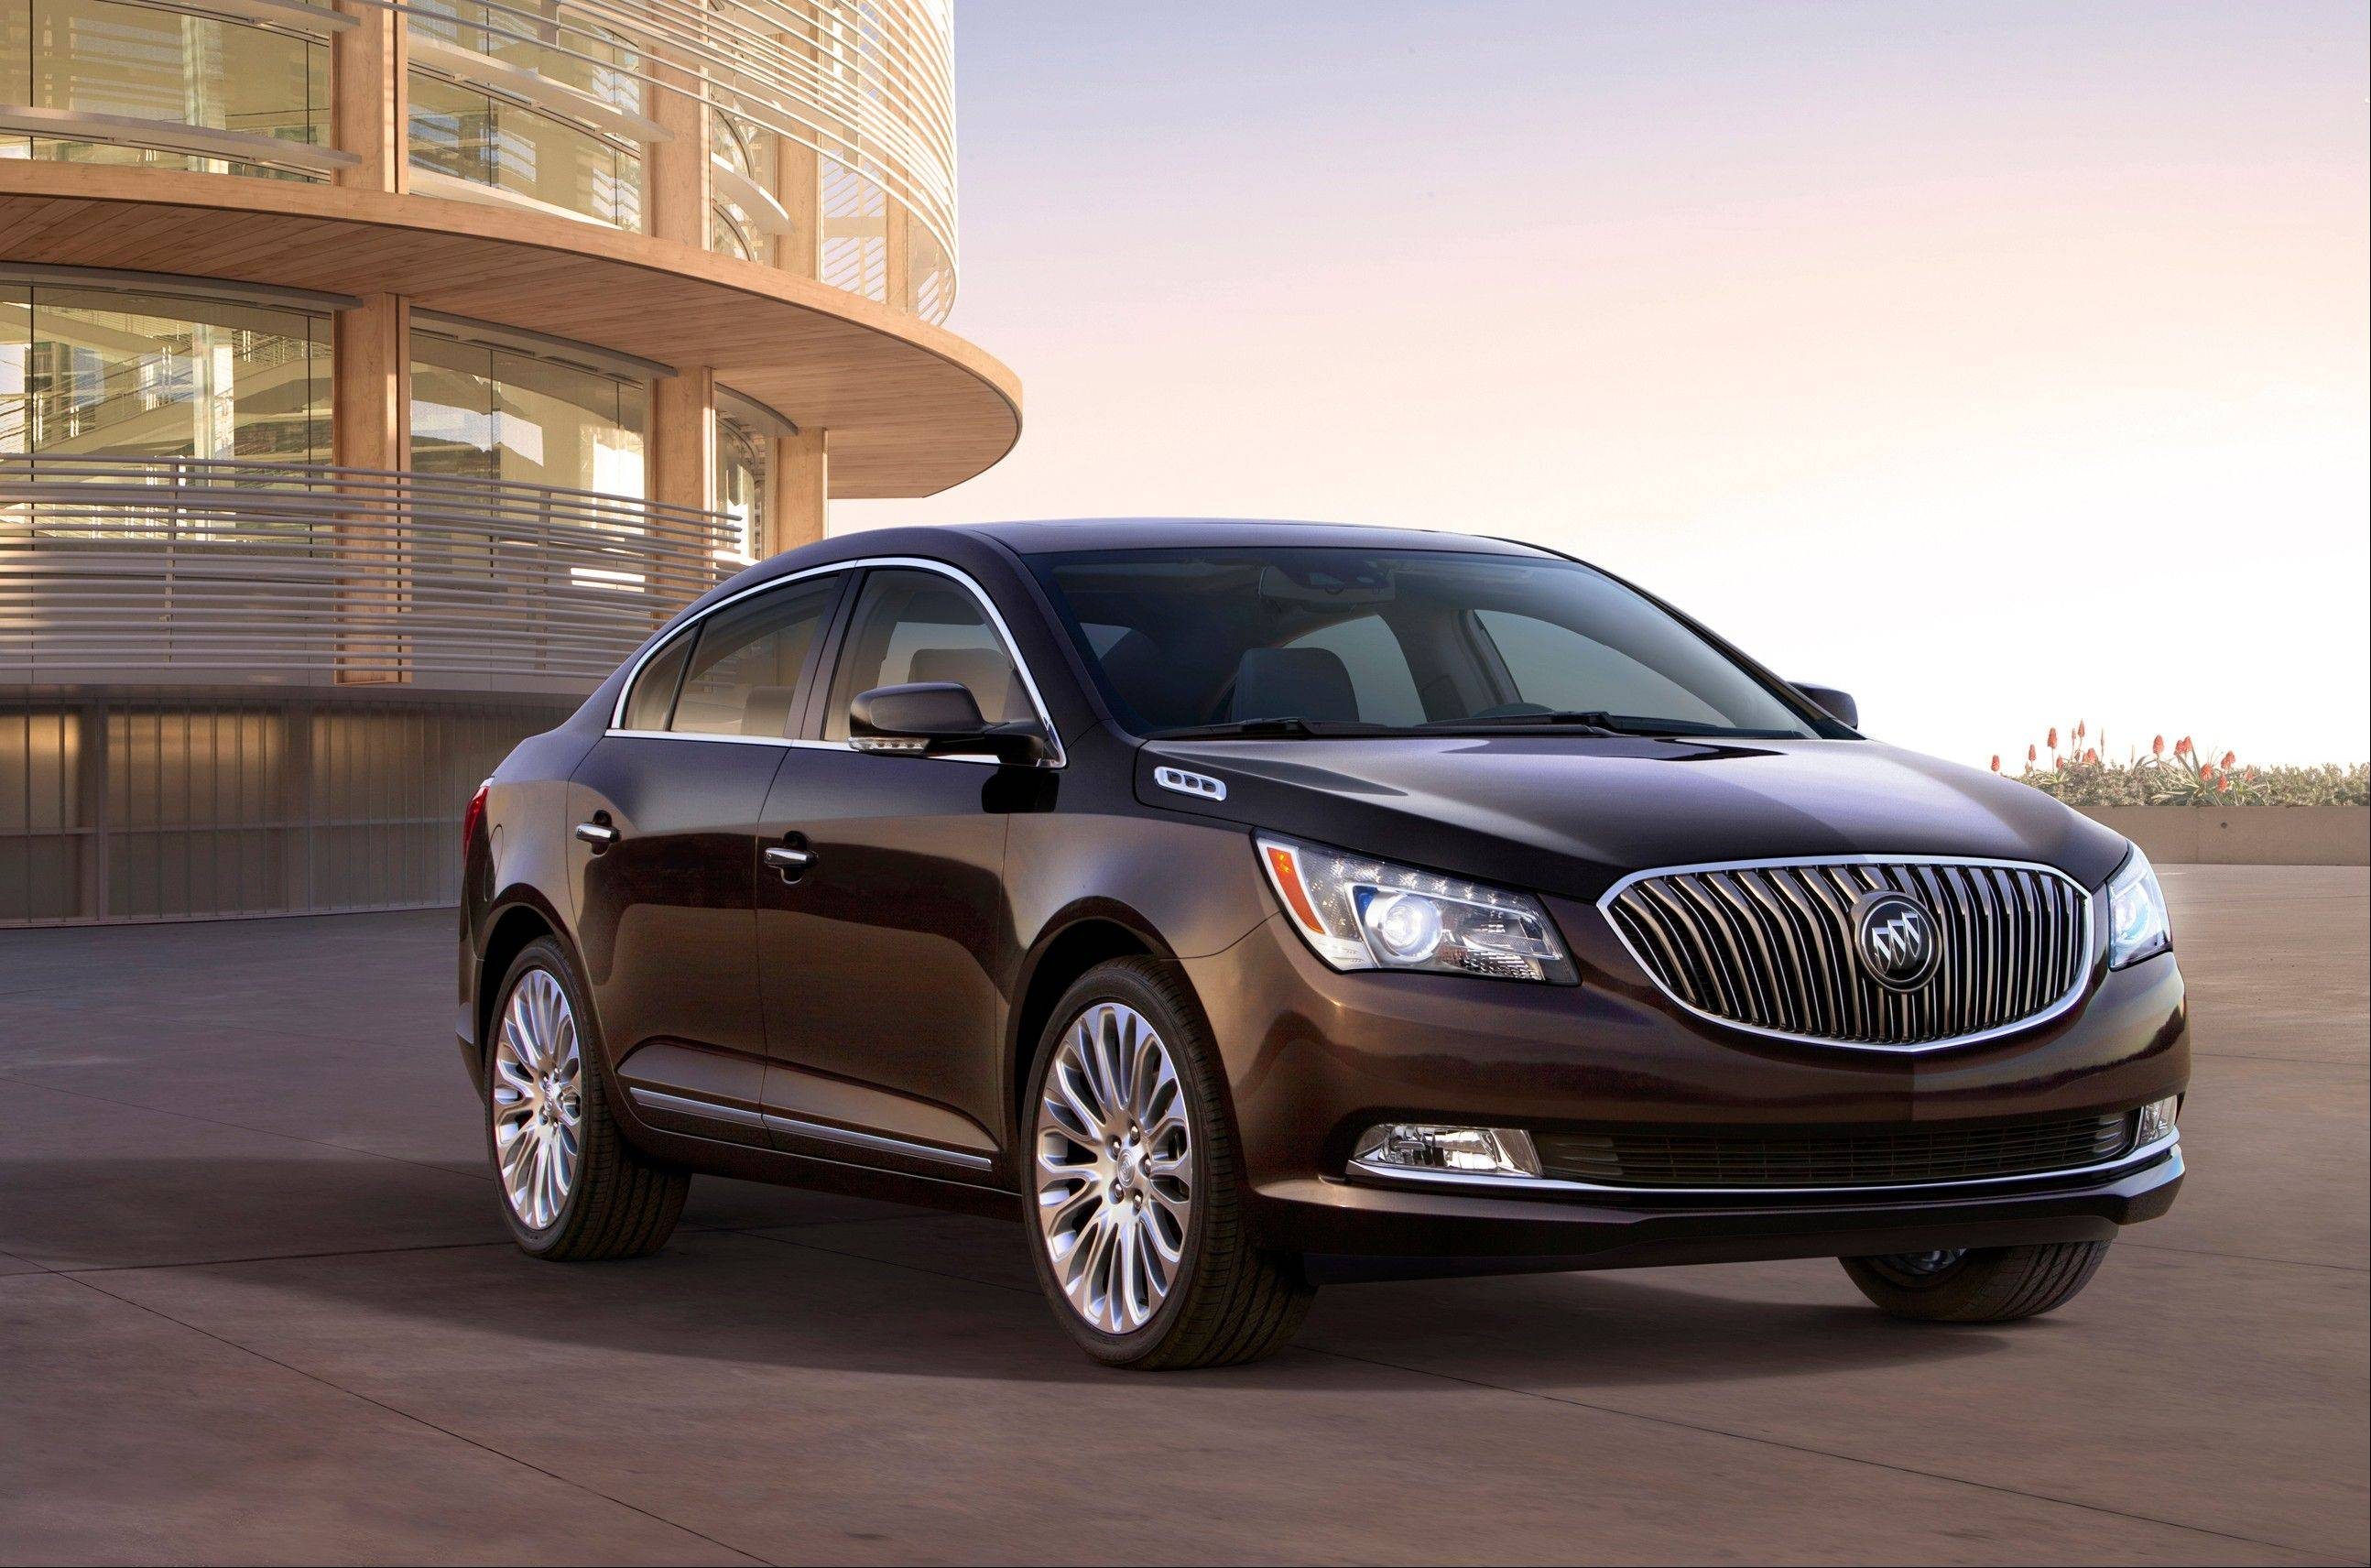 This is a 2014 Buick LaCrosse. GM is taking the latest step on its seemingly quixotic quest to revive the Buick brand in the U.S., rolling out refurbished versions of the midsize Regal and the larger LaCrosse.